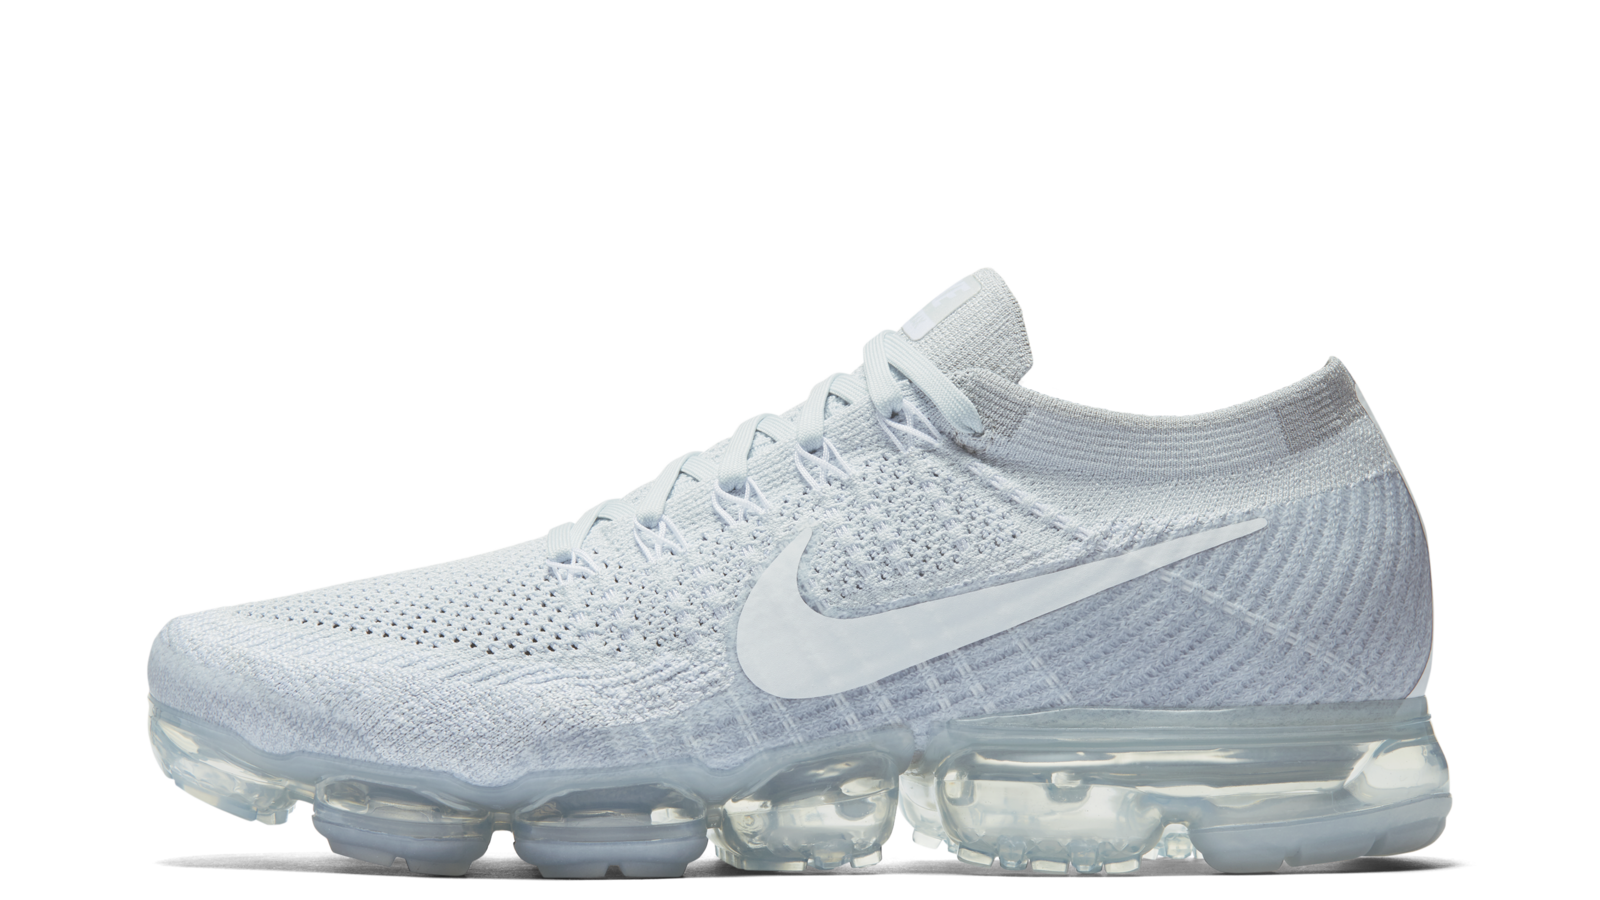 4254d6bc8fc Nike Air VaporMax Reveals the Pinnacle of Air - Nike News